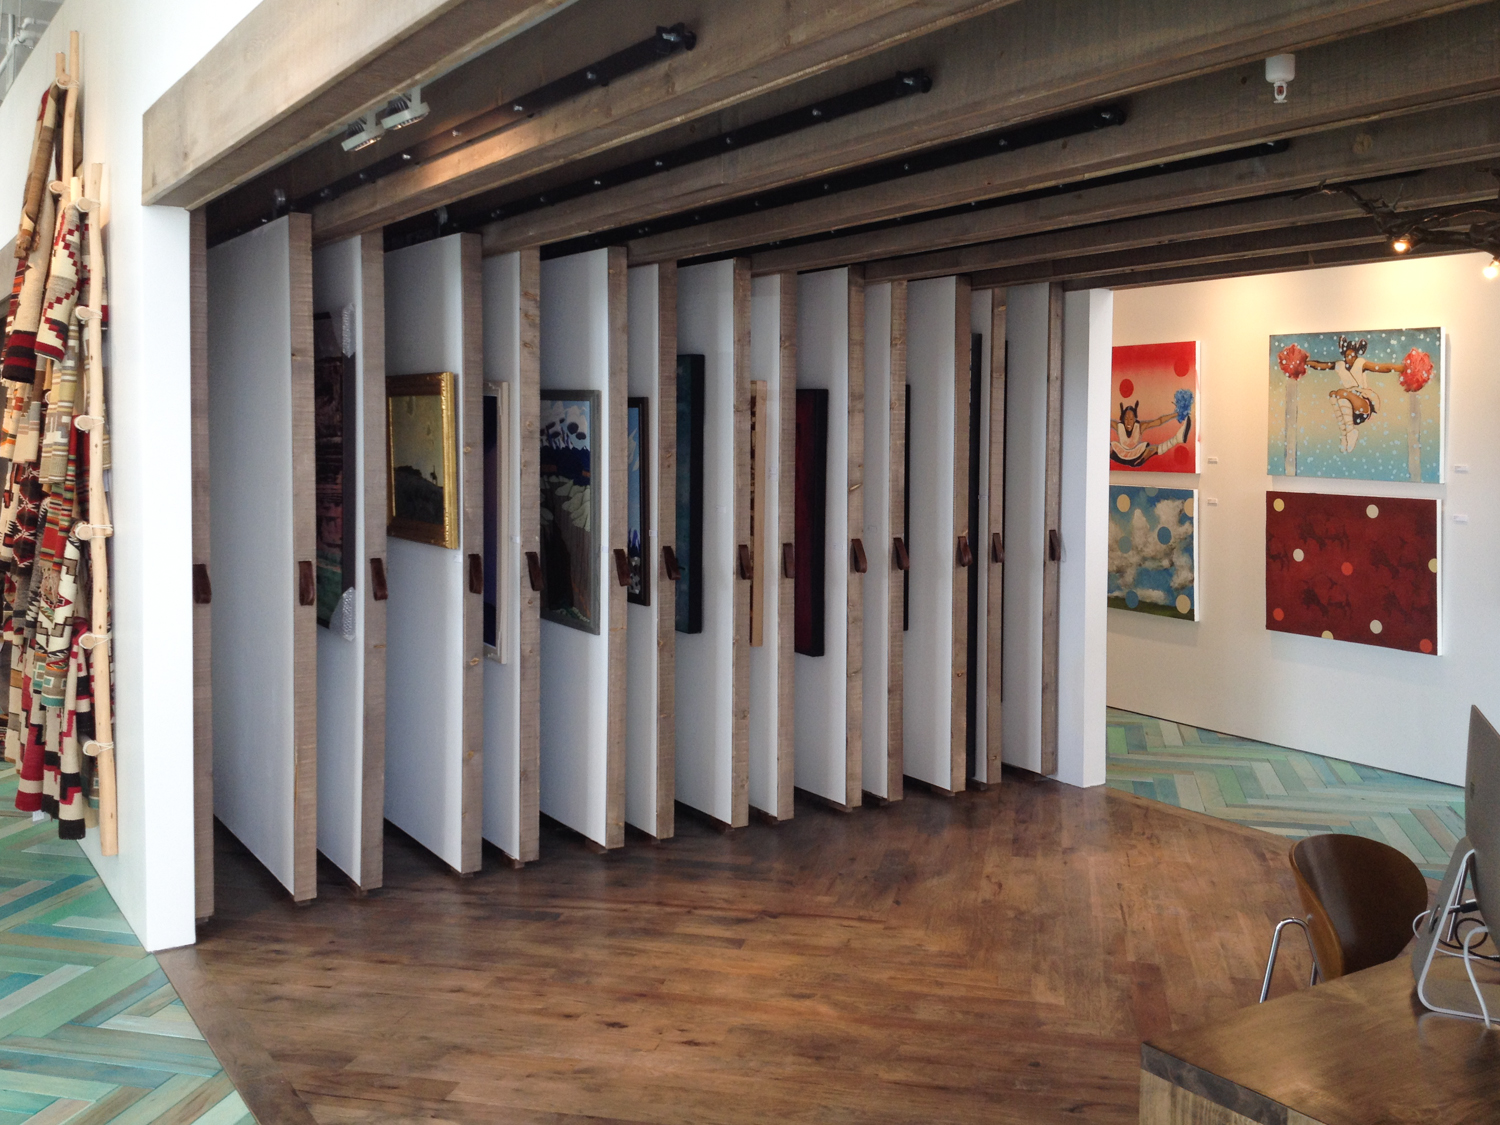 The gallery has a huge collection of art, well beyond the hanging capacity of gallery space. We custom built these art storage walls to address that need. Easily moveable by customers, they can potentially store up to 100 pieces.